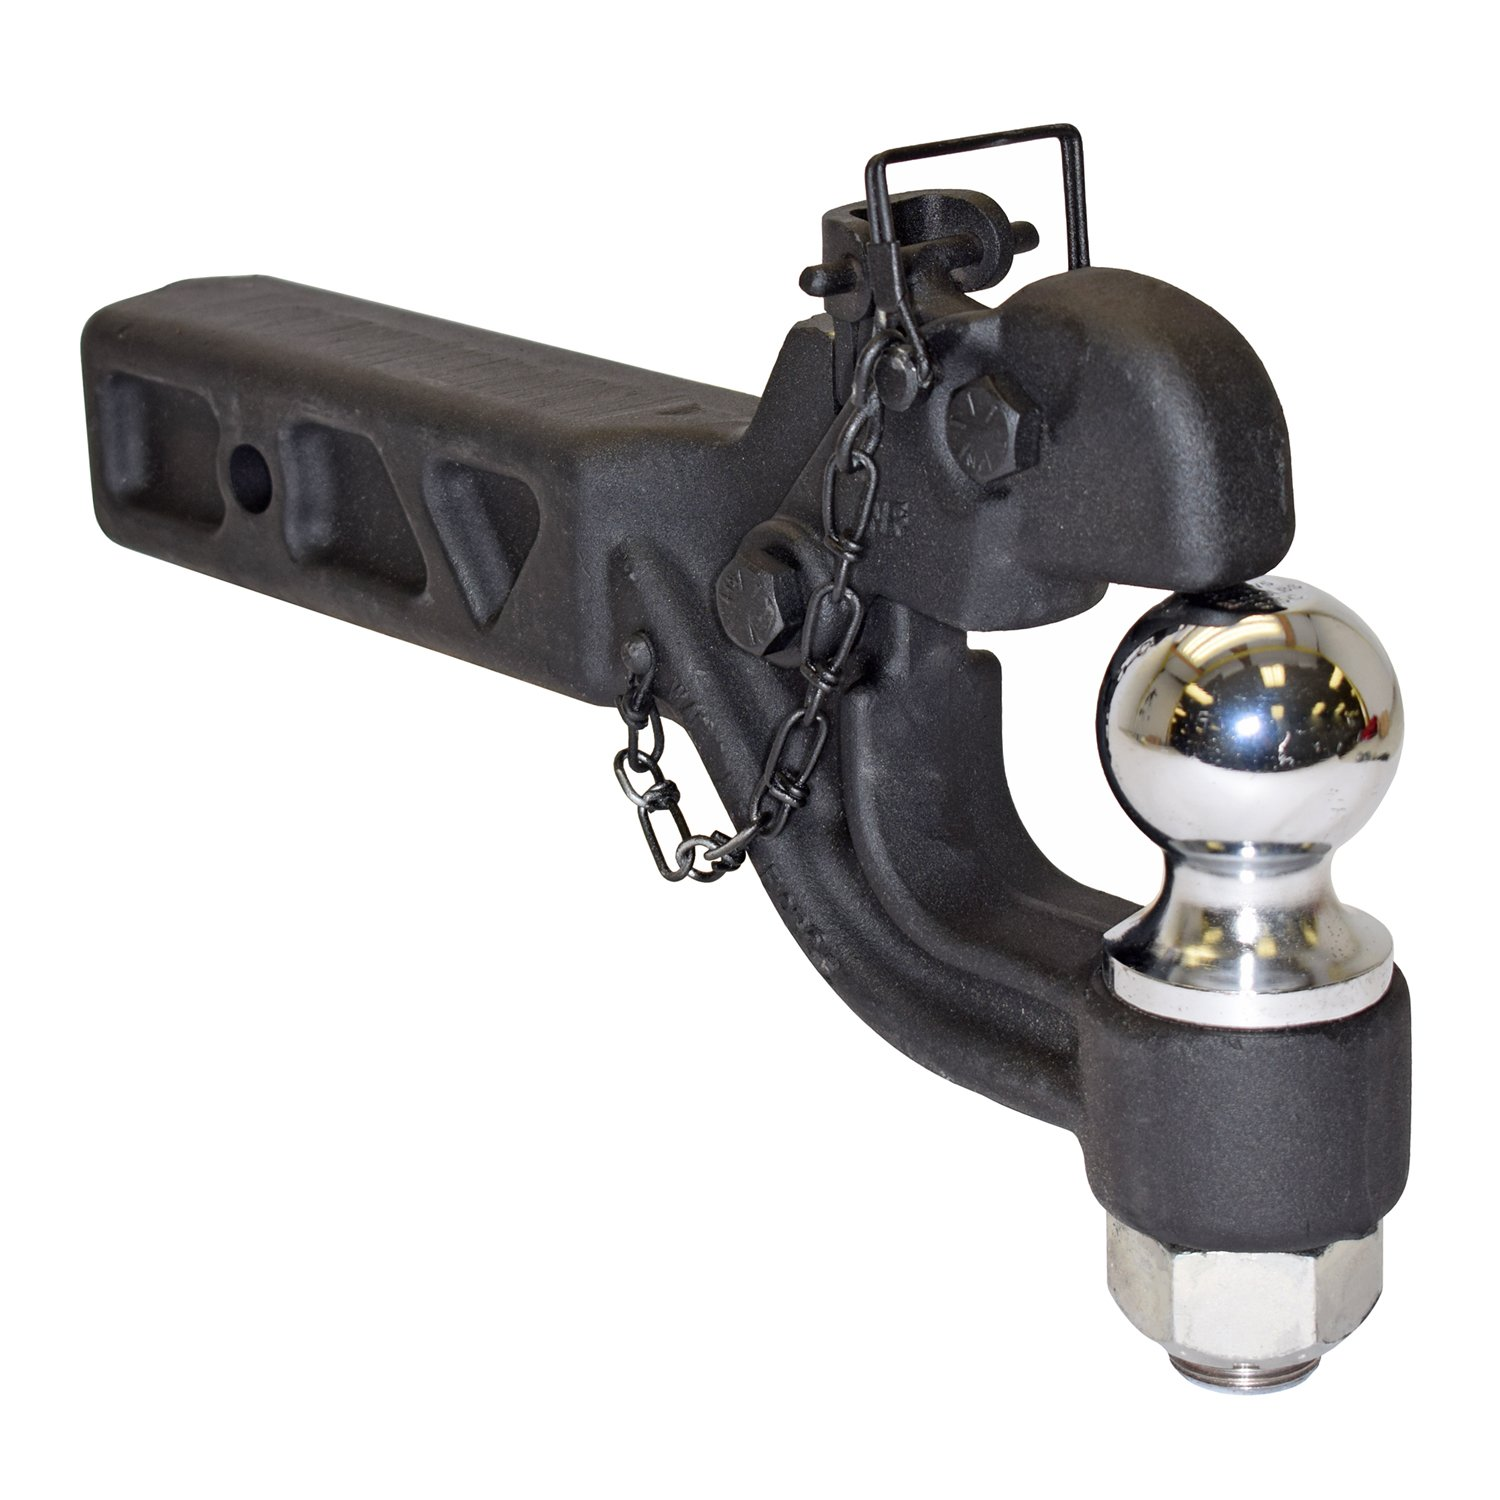 2-1/2 Inch Receiver Mounted Combination Pintle Hook With 2 Inch Ball - Made In U.S.A.